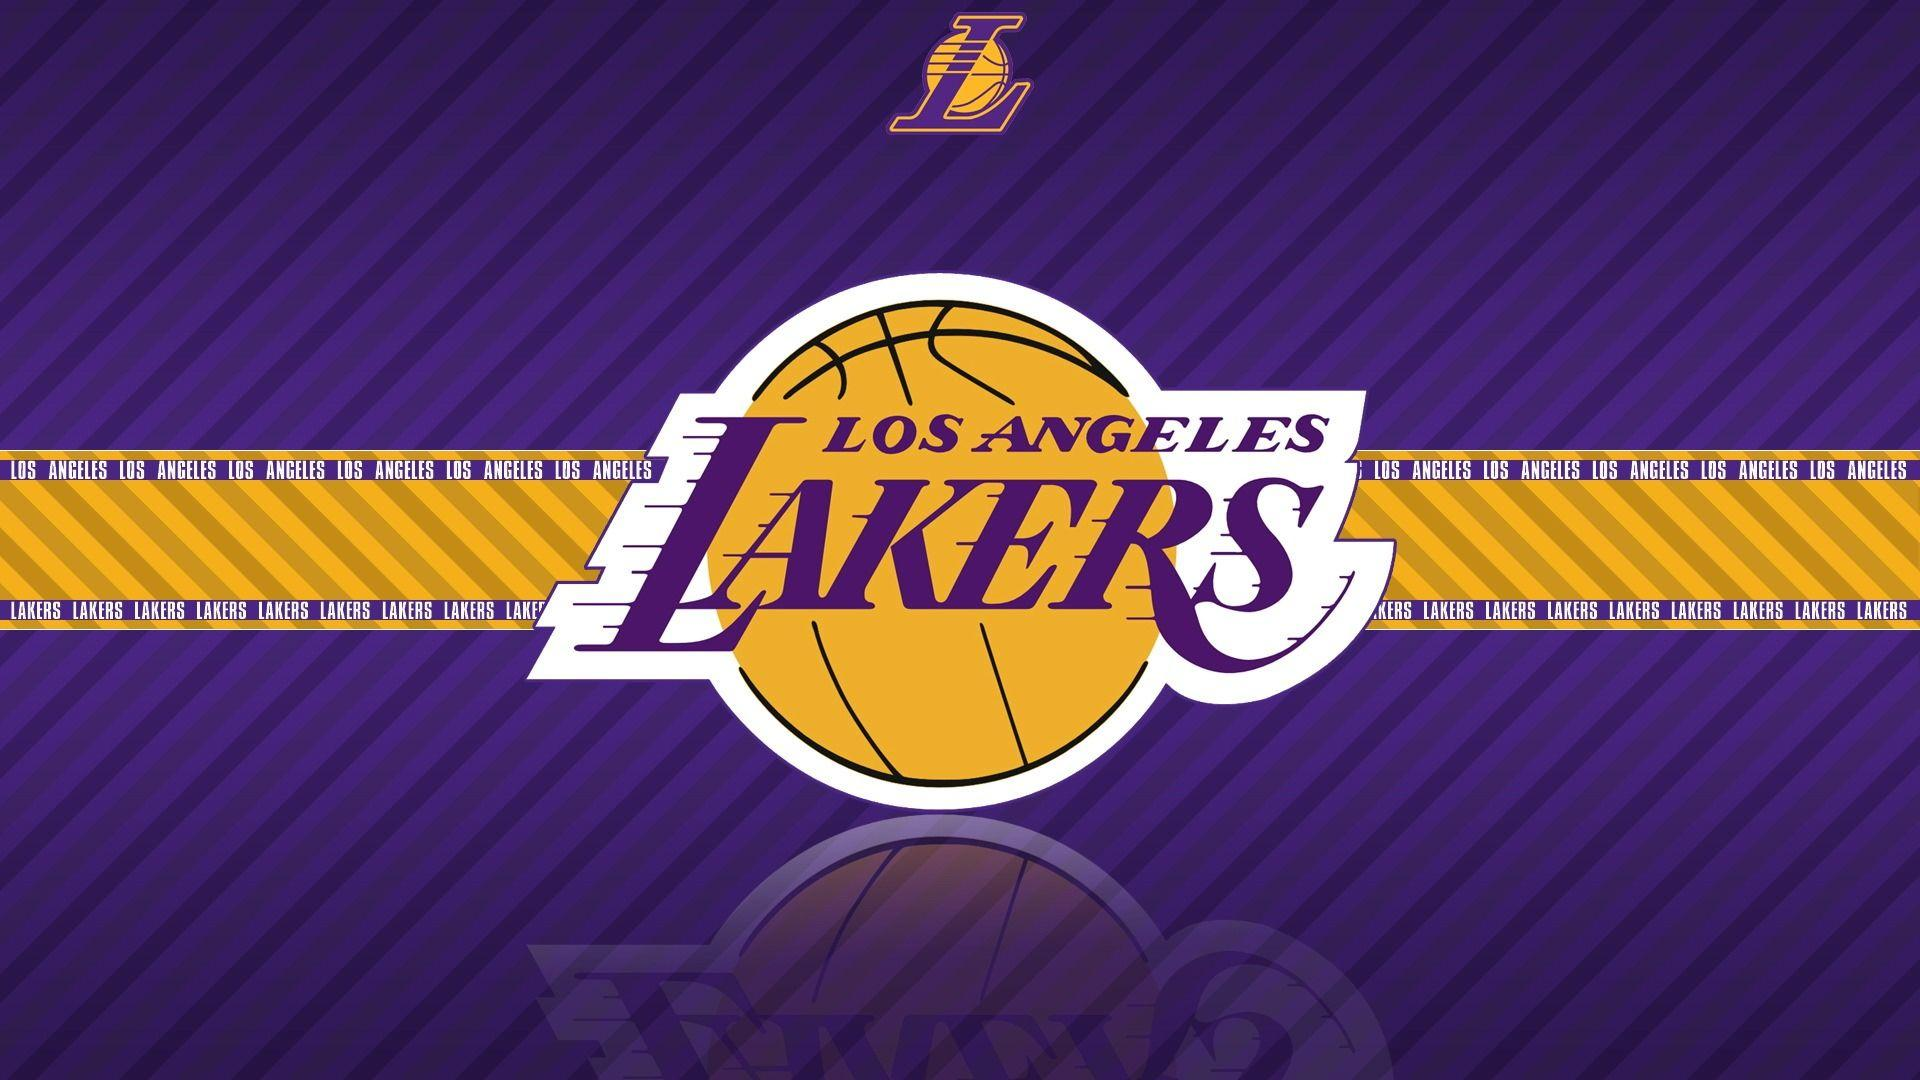 Los Angeles Lakers Logo >> LA Lakers Wallpapers - Wallpaper Cave